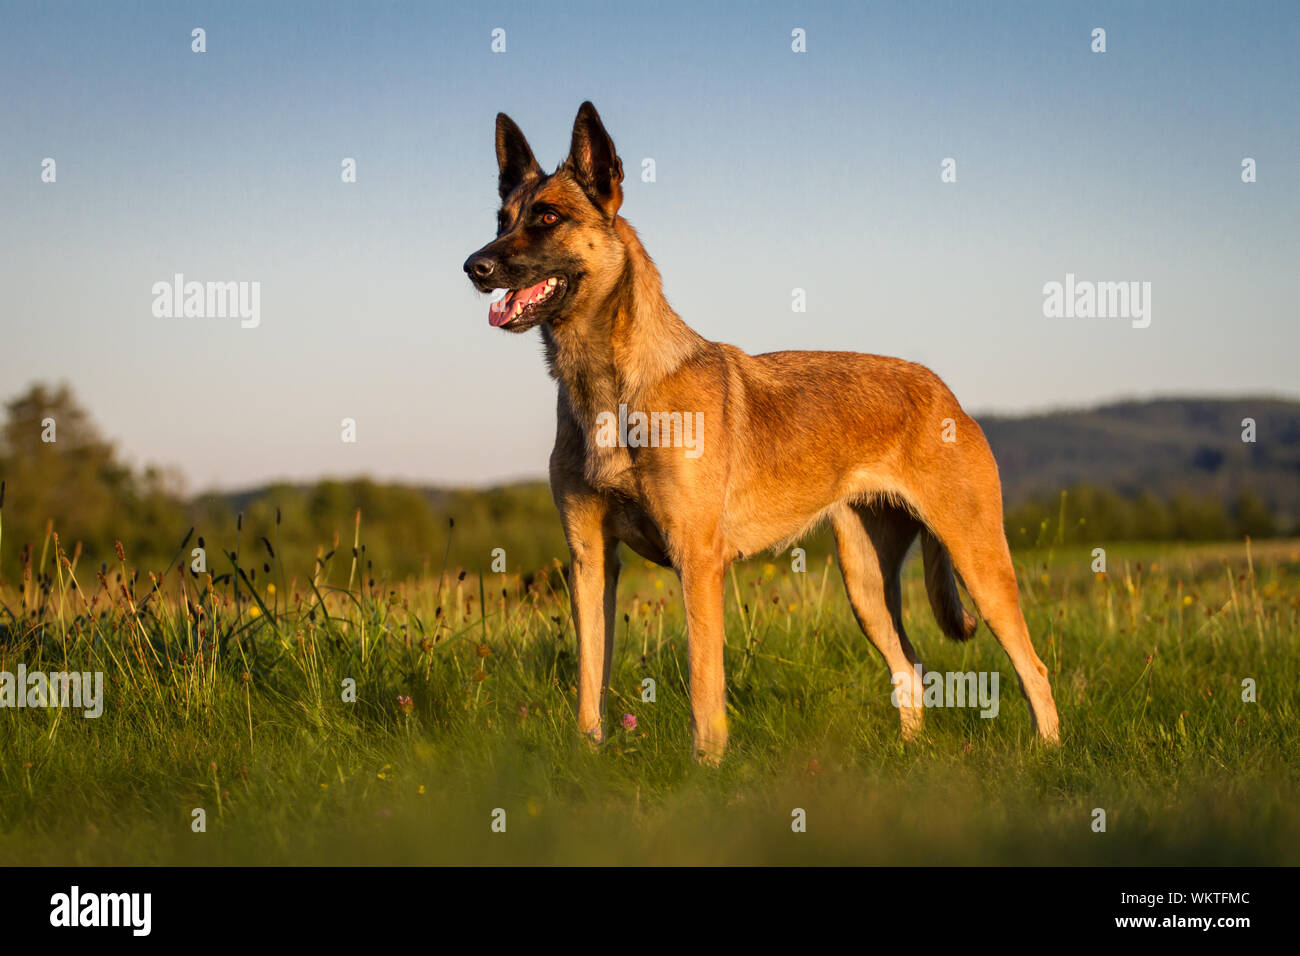 Belgian Malinois Dog High Resolution Stock Photography And Images